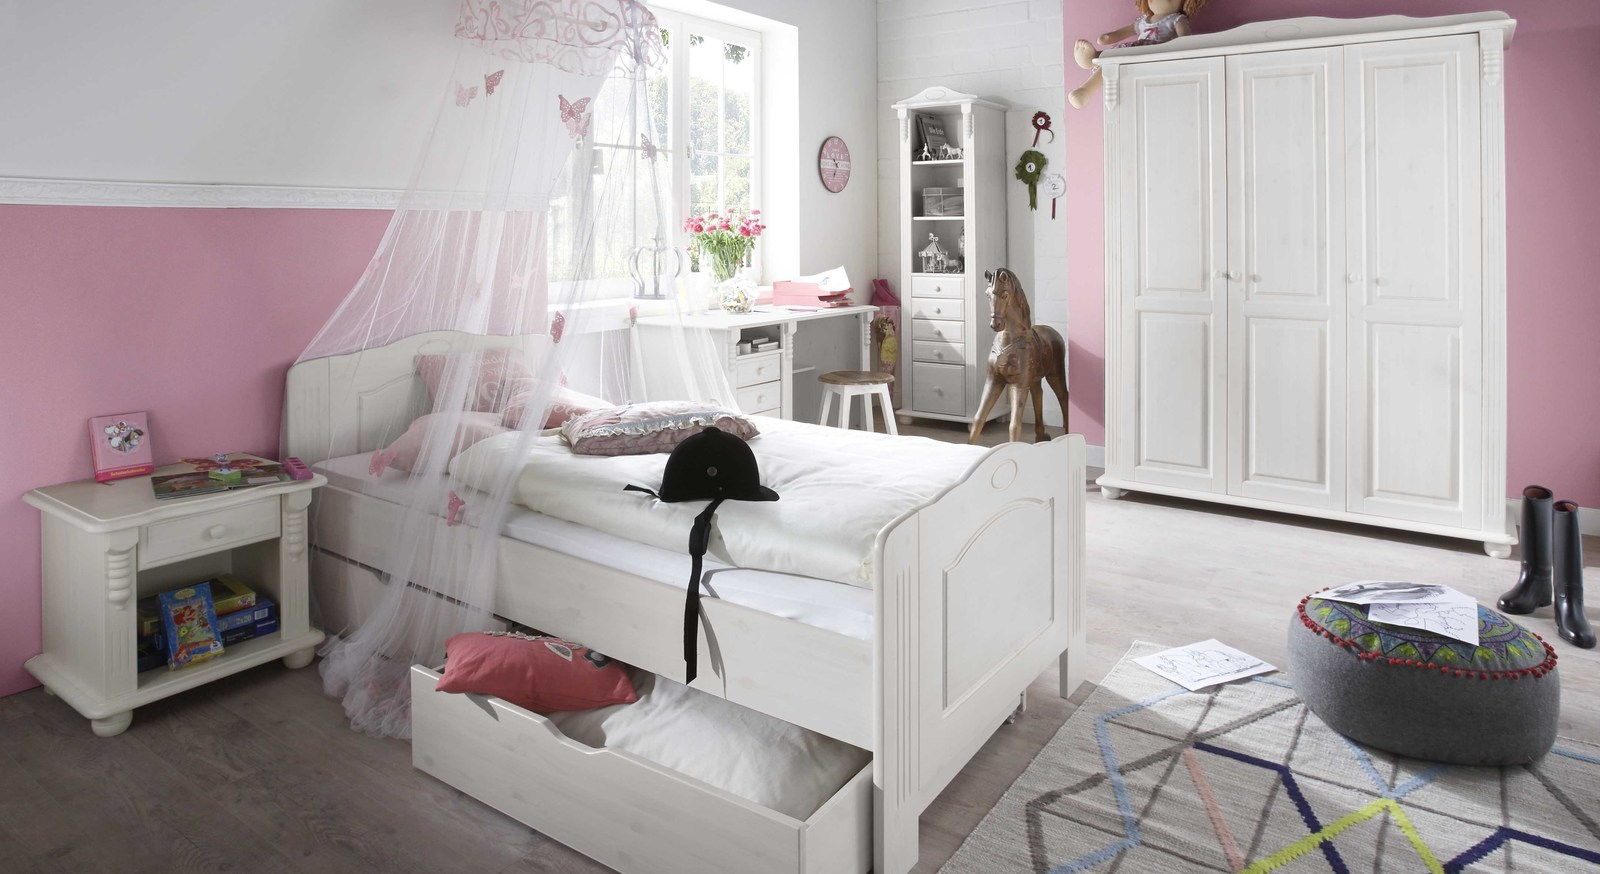 jugendzimmer im landhausstil wei gewachste kiefer. Black Bedroom Furniture Sets. Home Design Ideas